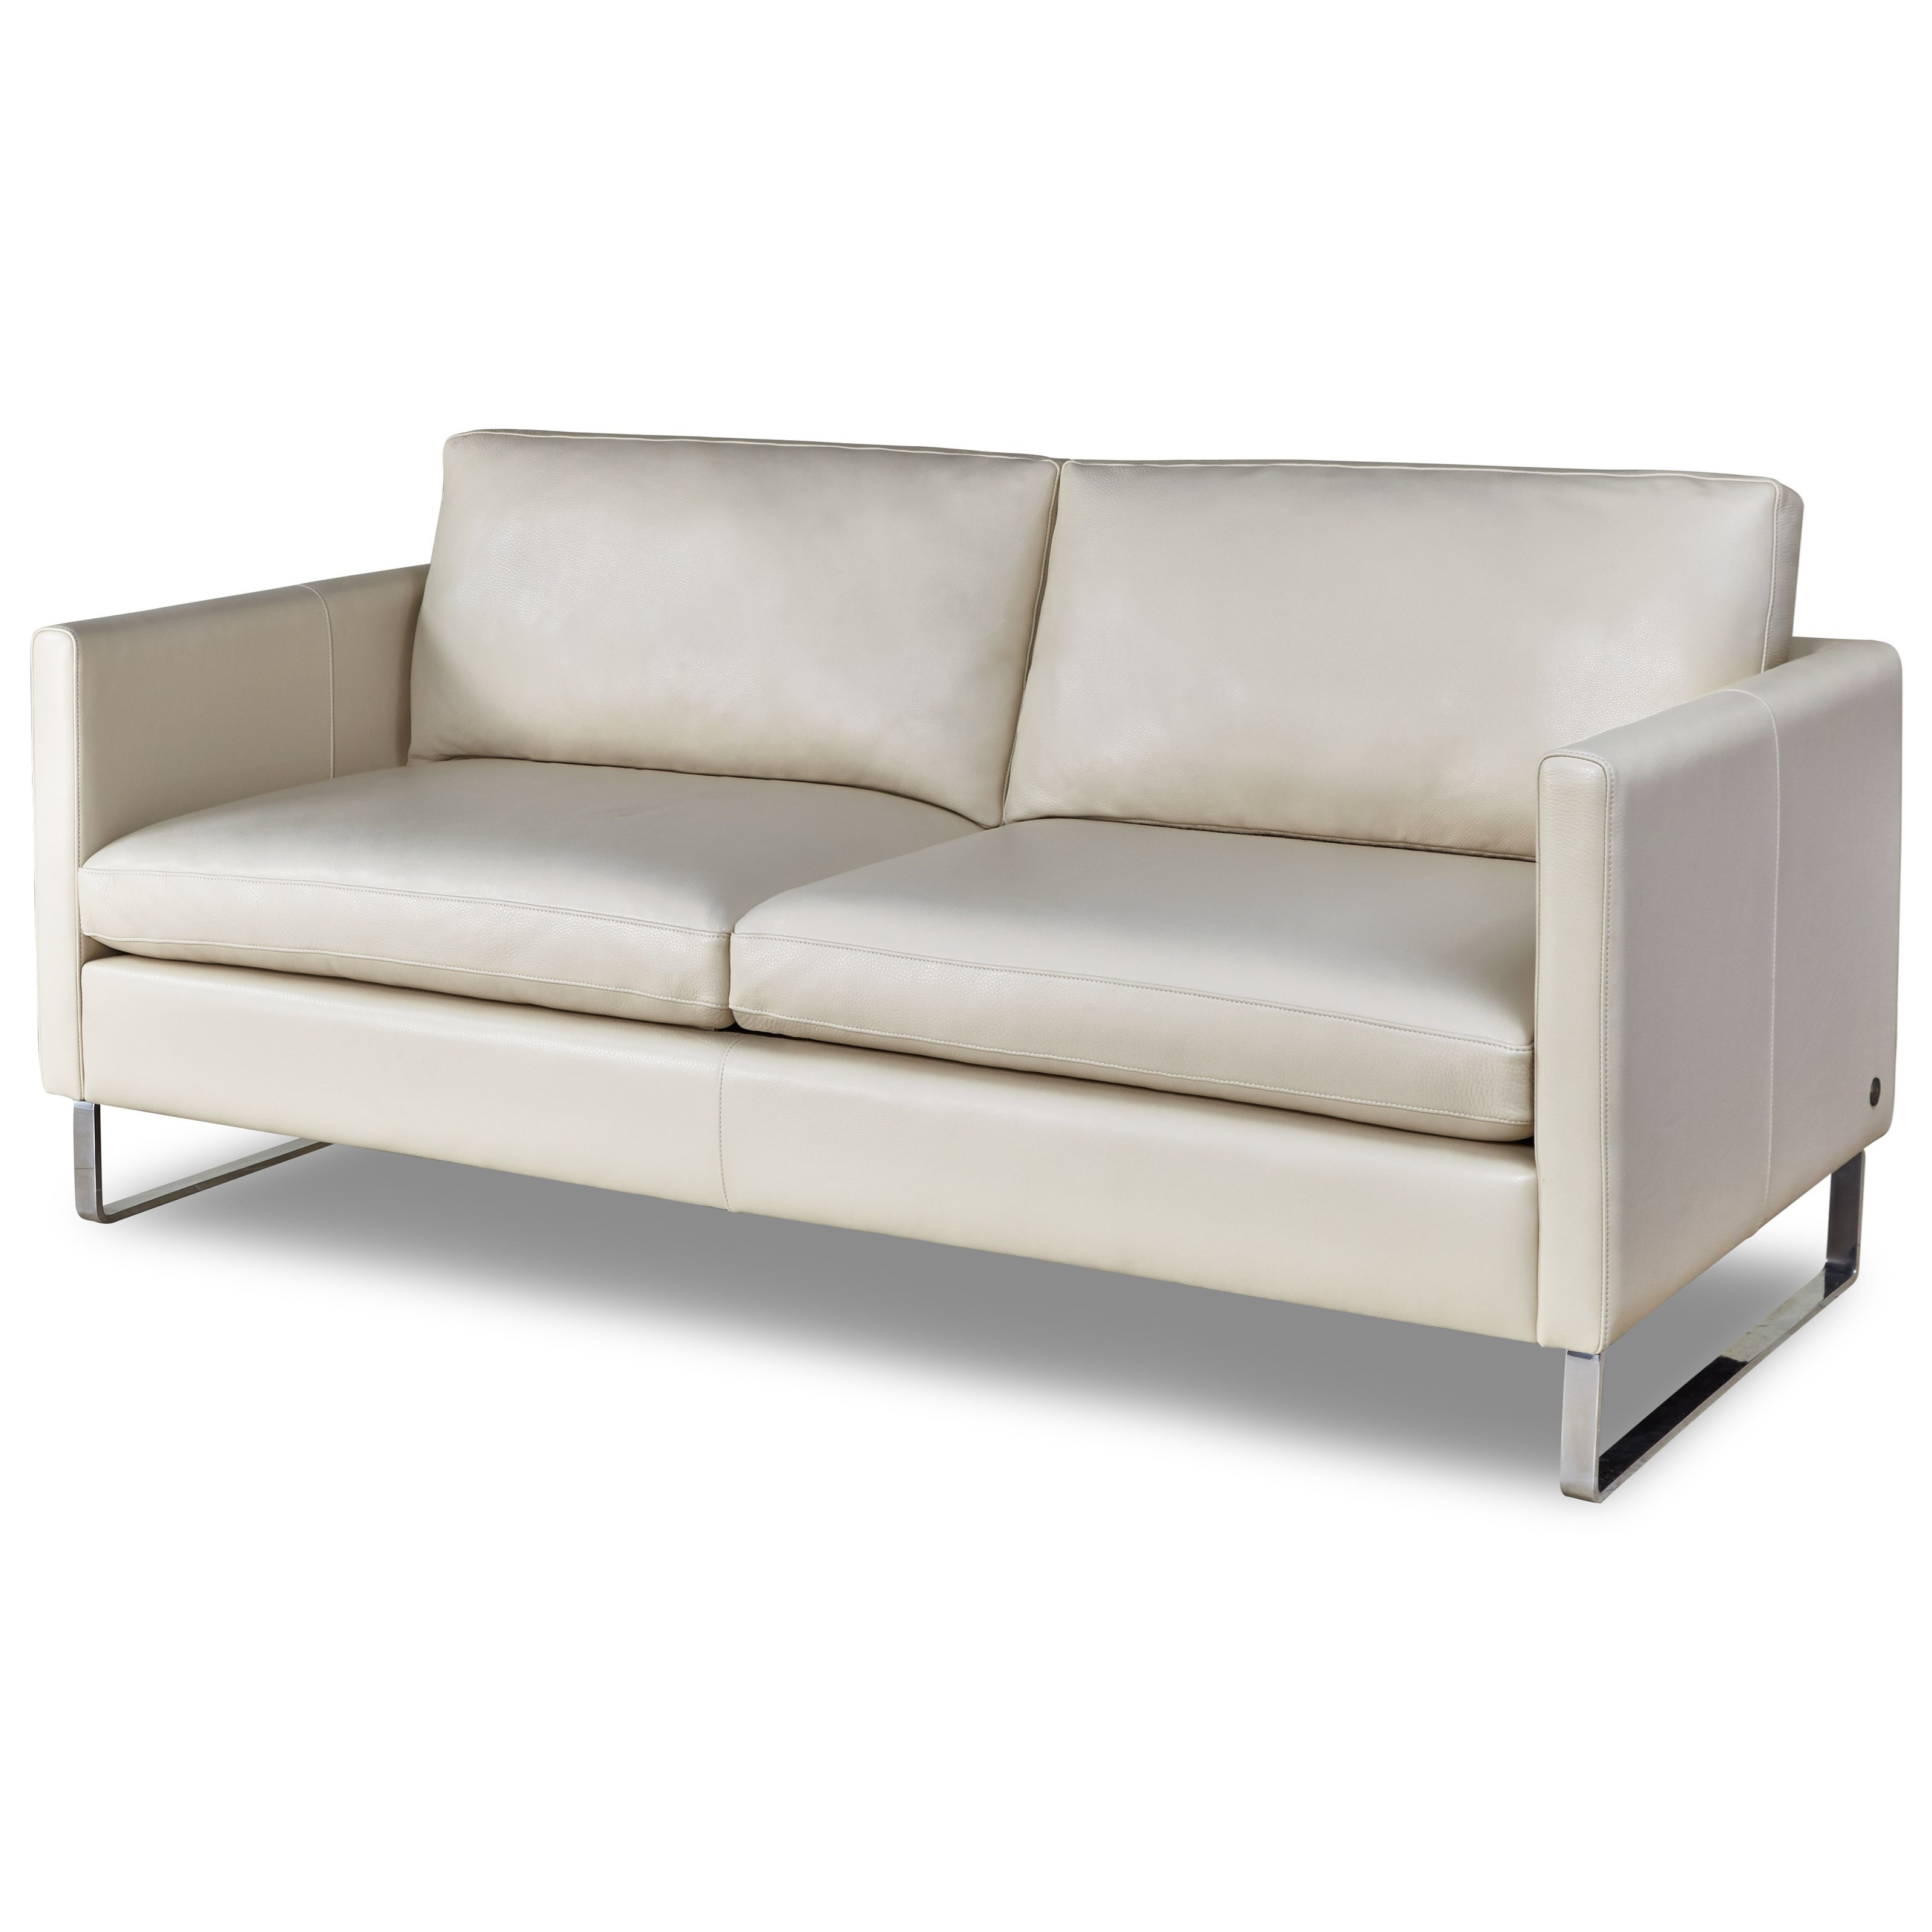 American Leather Milo Modern 2 Seater Sofa With